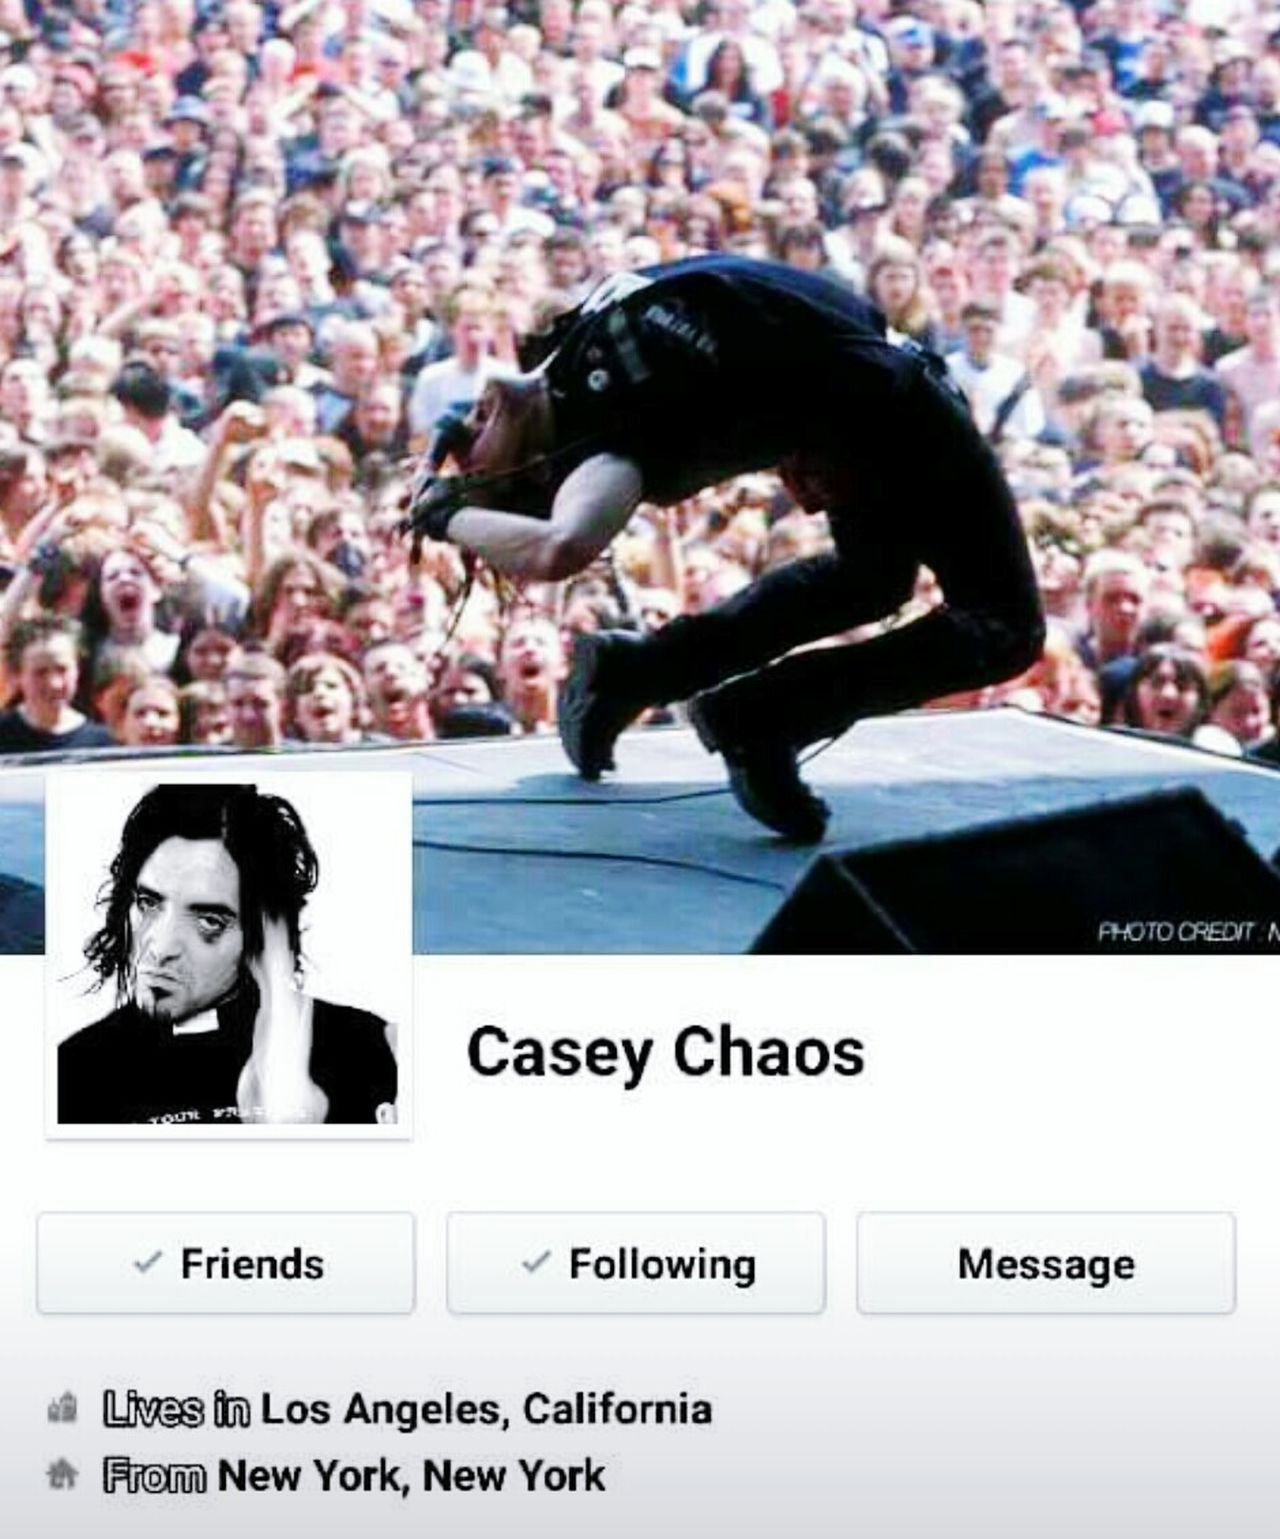 Amen Bands Casy Chaos Musician Singer/Song Writer Music Art Photography